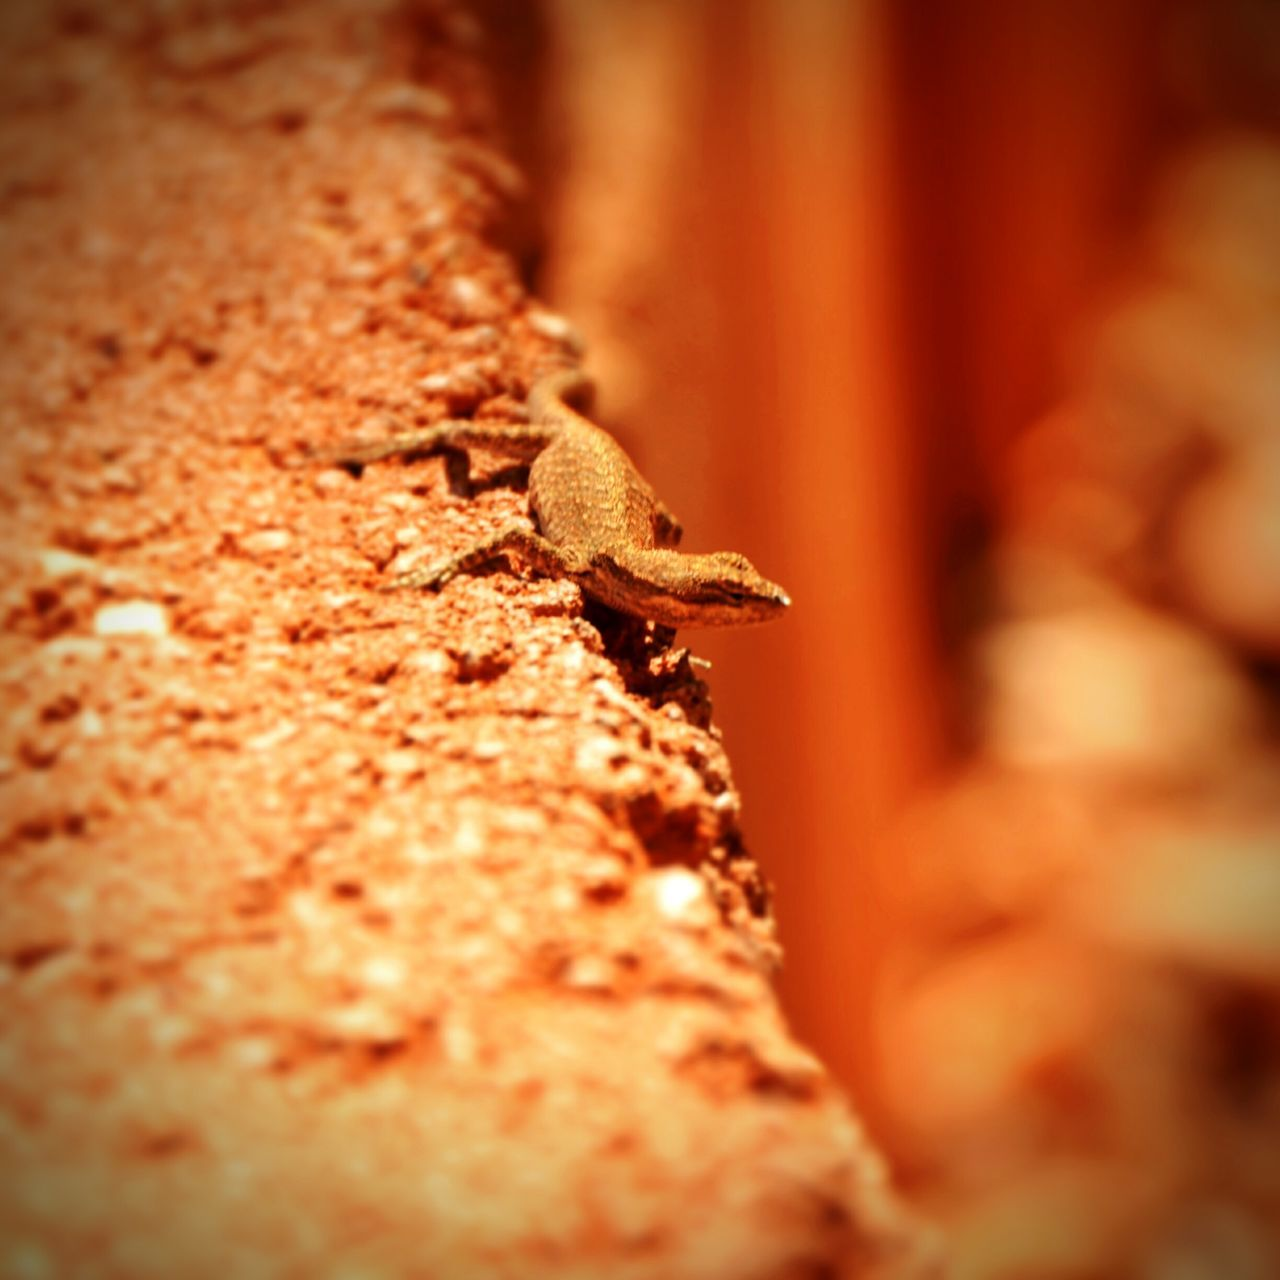 Animal Themes Animals In The Wild Animal Wildlife No People Outdoors One Animal Lizards Lizard Watching Lizard Close Up Day Close-up Nature Lizard Photography Lizard Nature lizard cuteness First Eyeem Photo